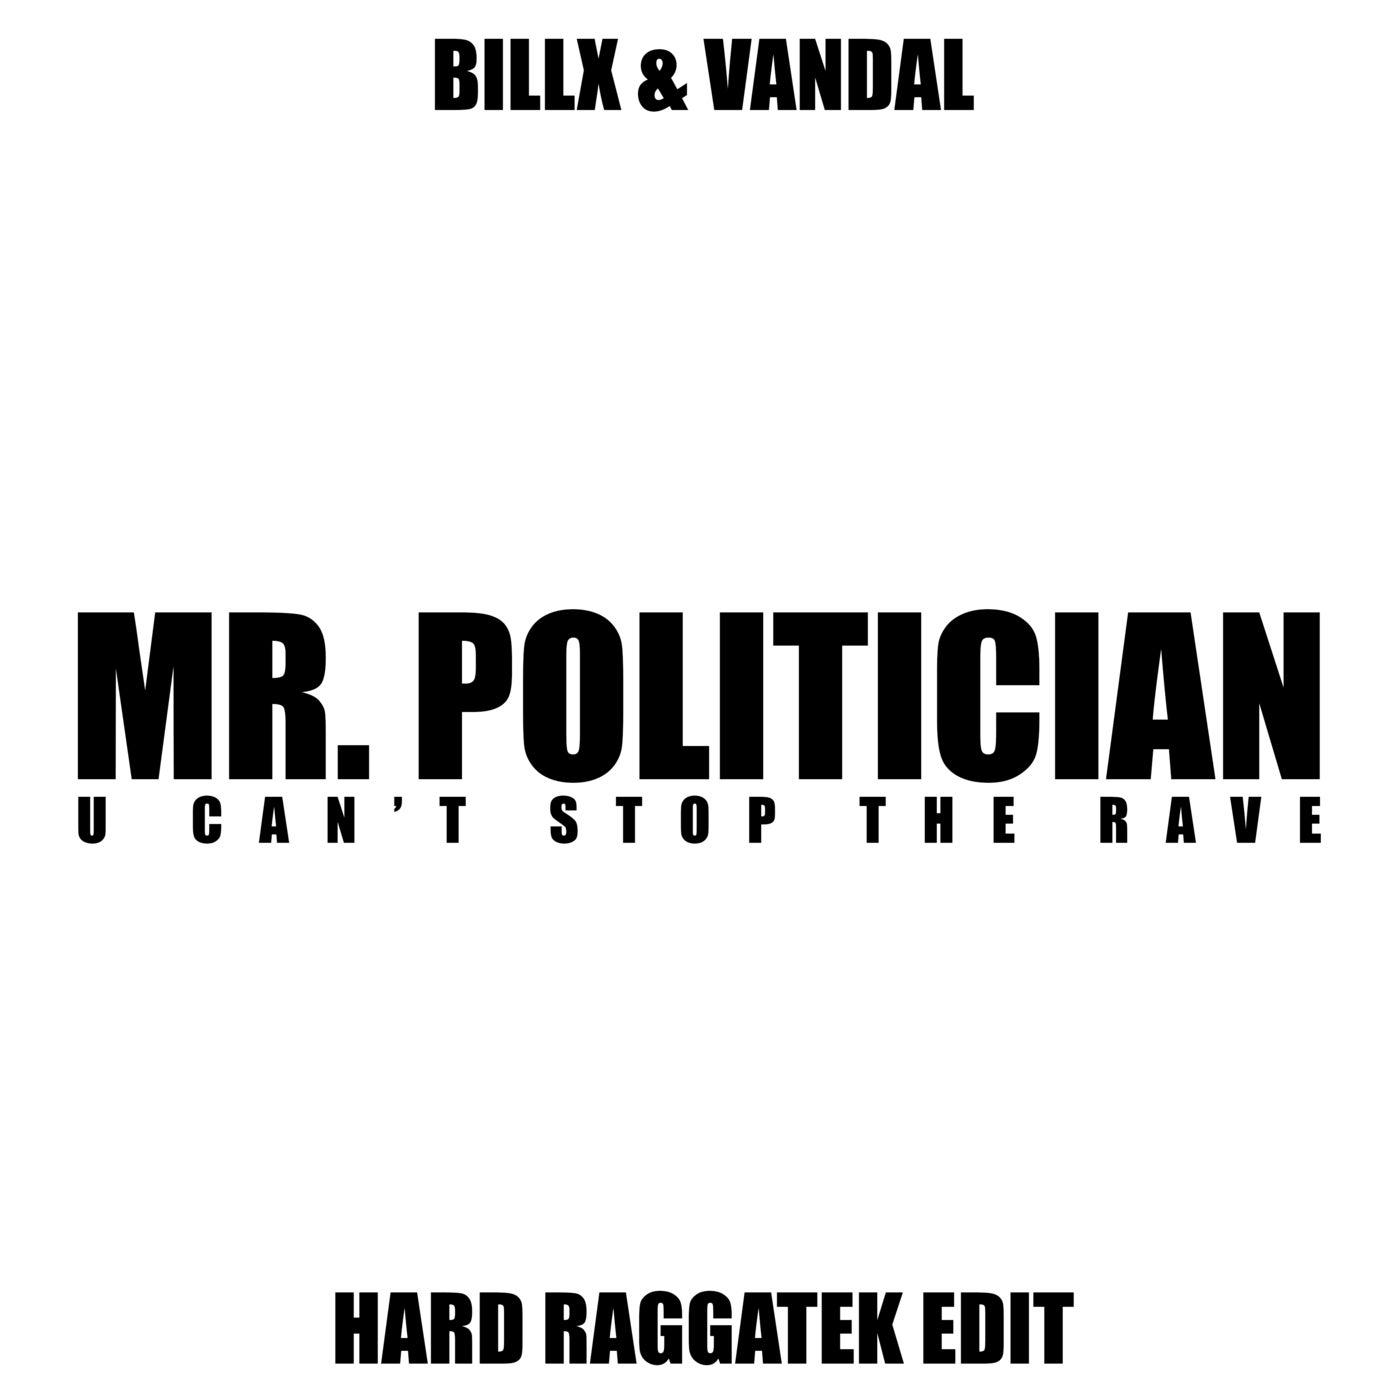 Mr. Politician (Hard Raggatek Edit)